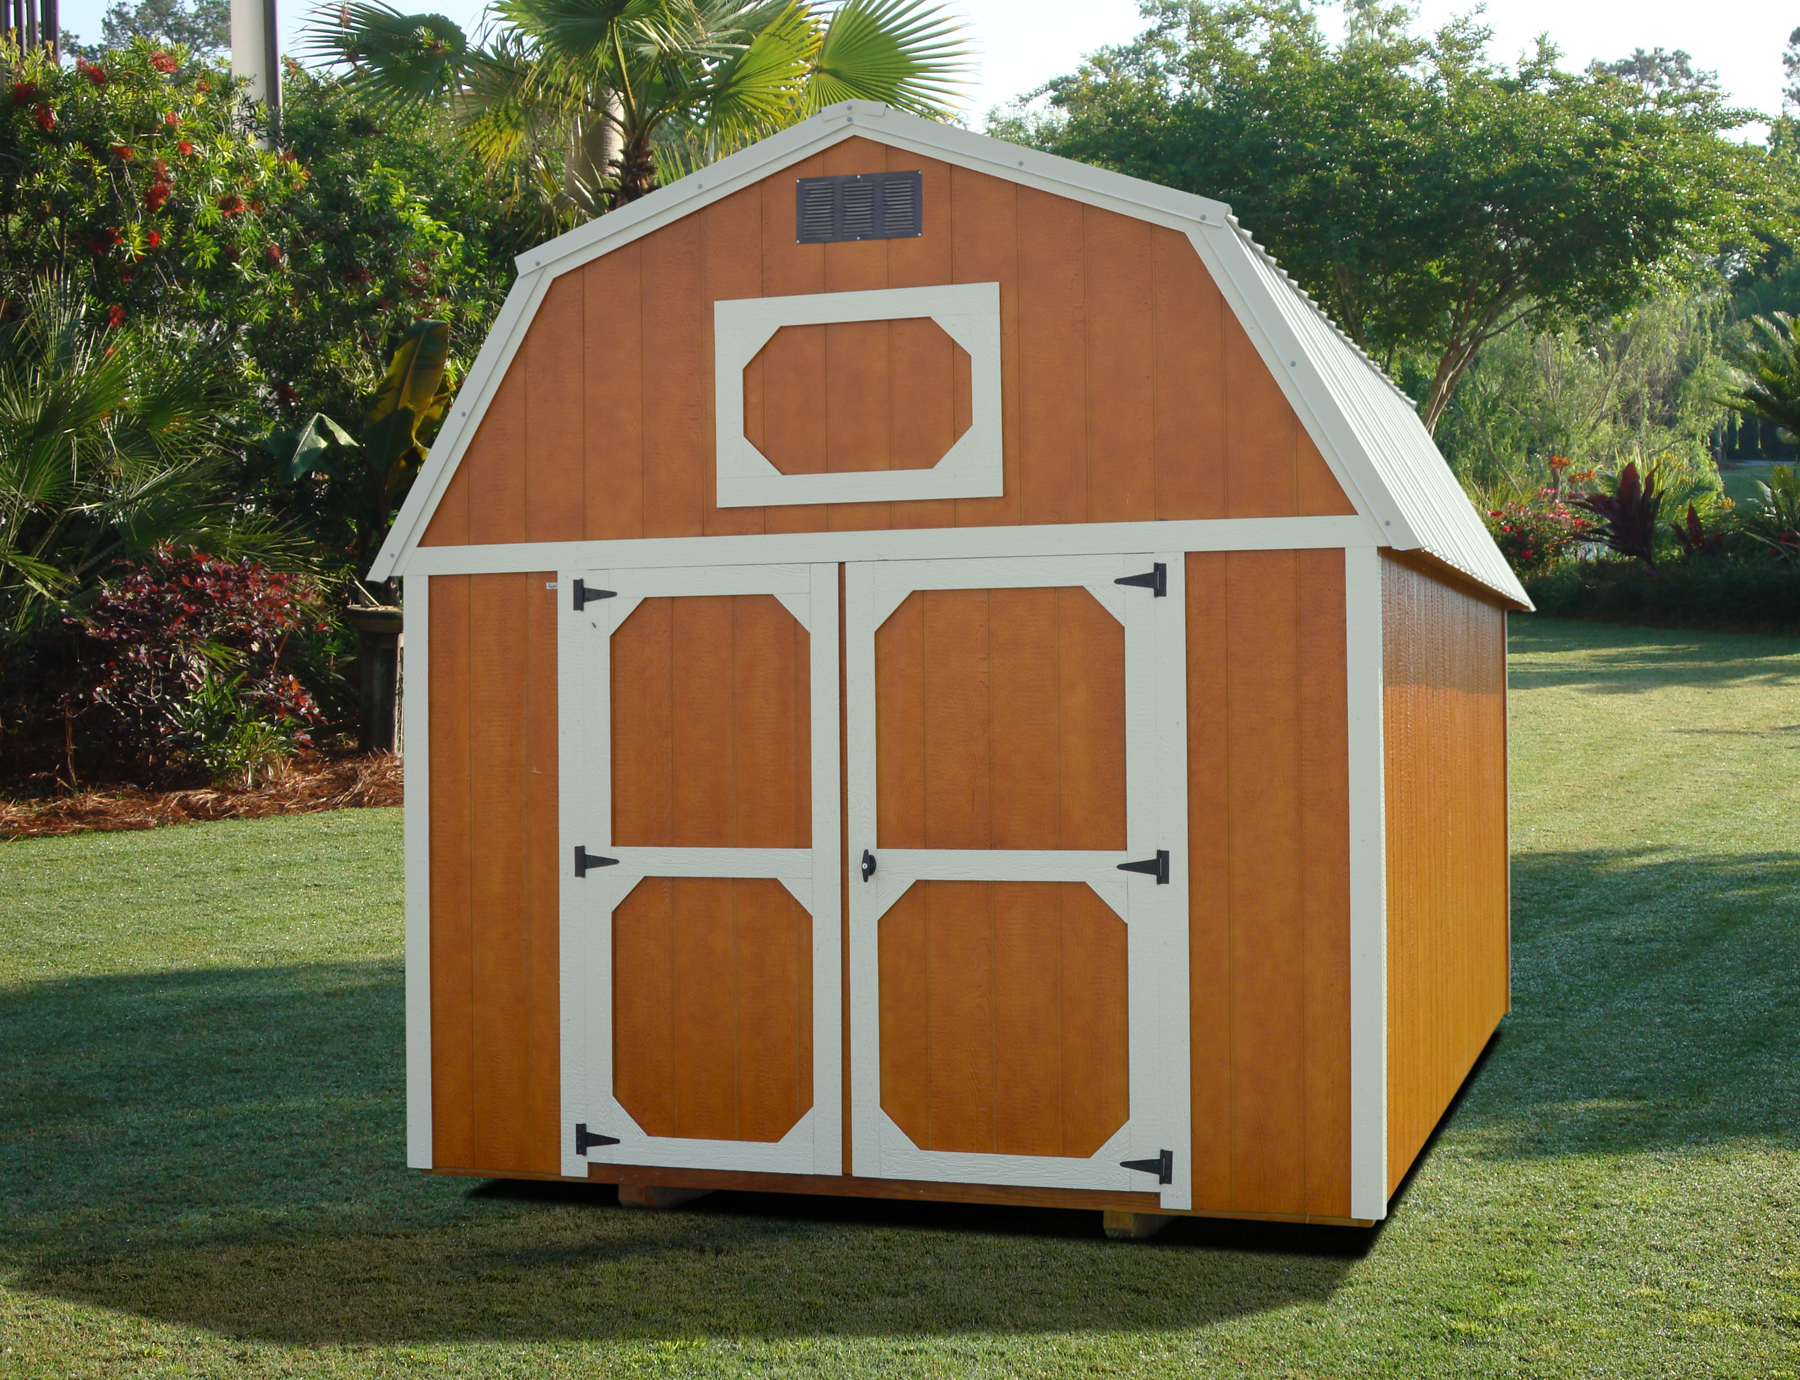 Garden Sheds Marietta Ga storage buildings / sheds atlanta - rent2ownsheds